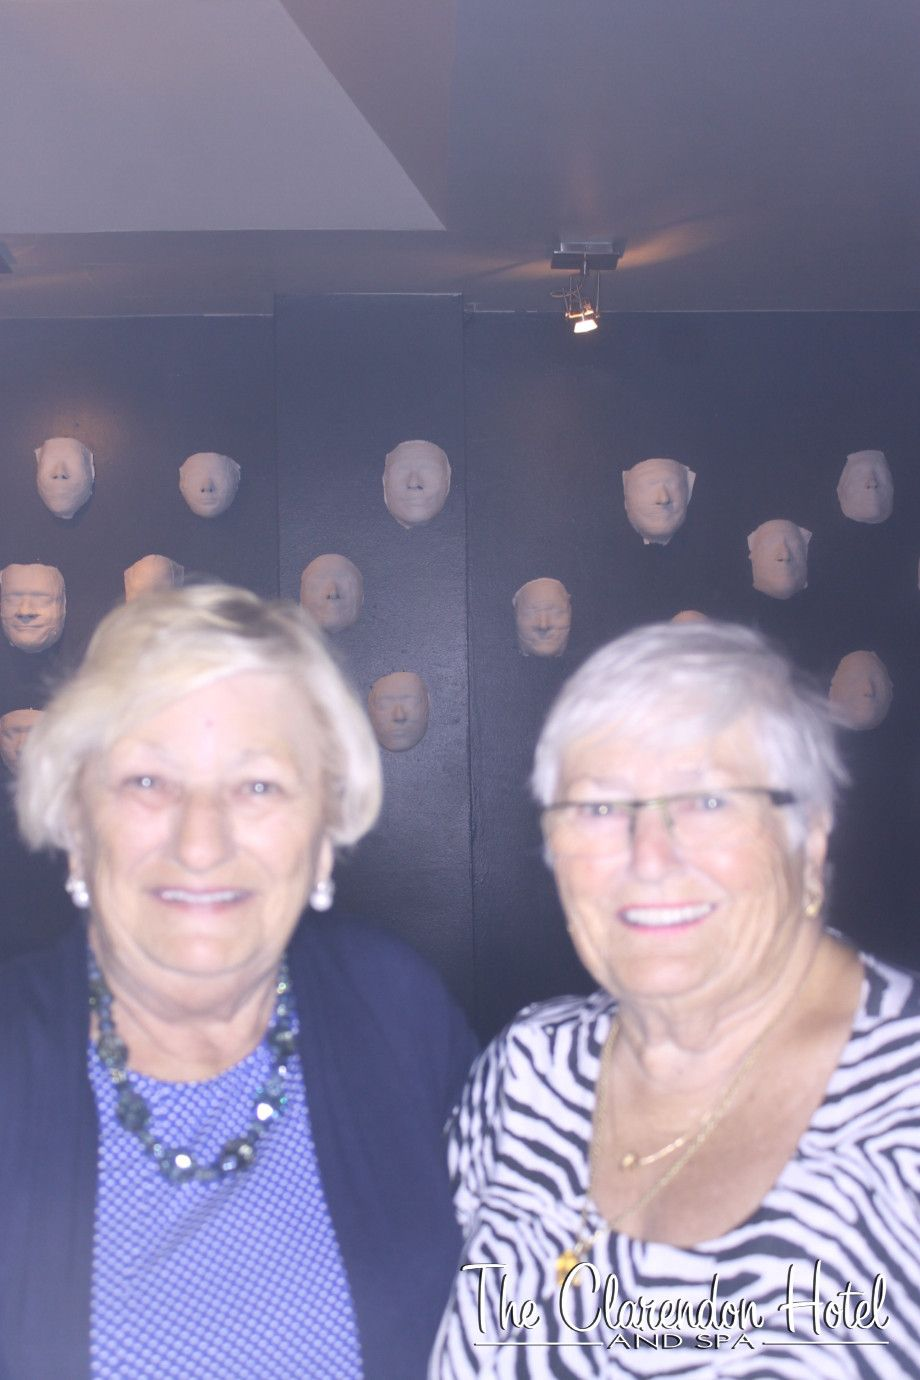 My photos from The Clarendon Hotel Photo Booth